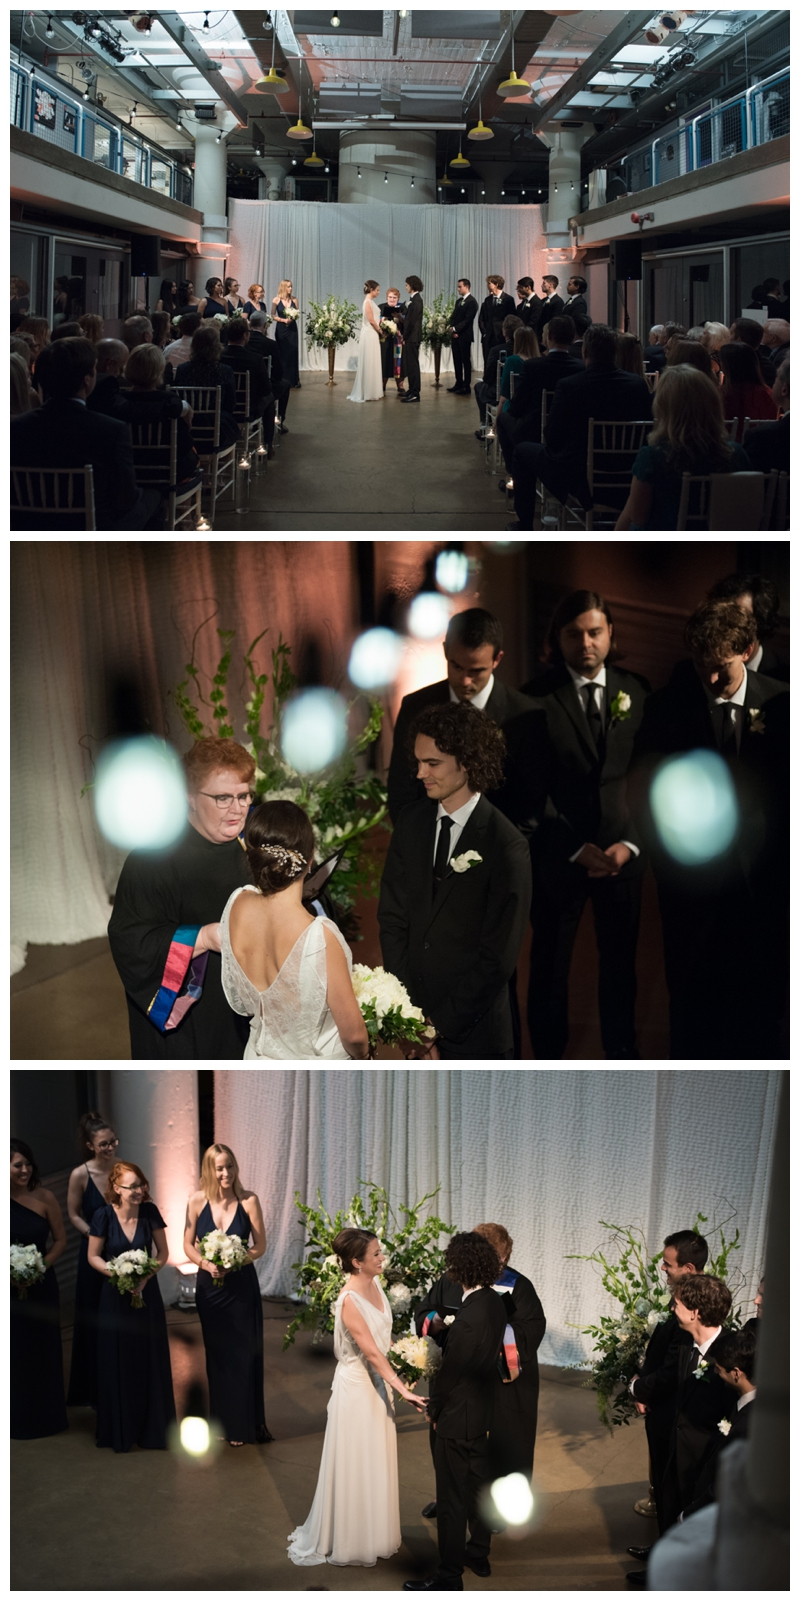 Wedding in Old Town Alexandria Virginia at the Torpedo Factory Art Center by Rachael Foster Photography_0064.jpg